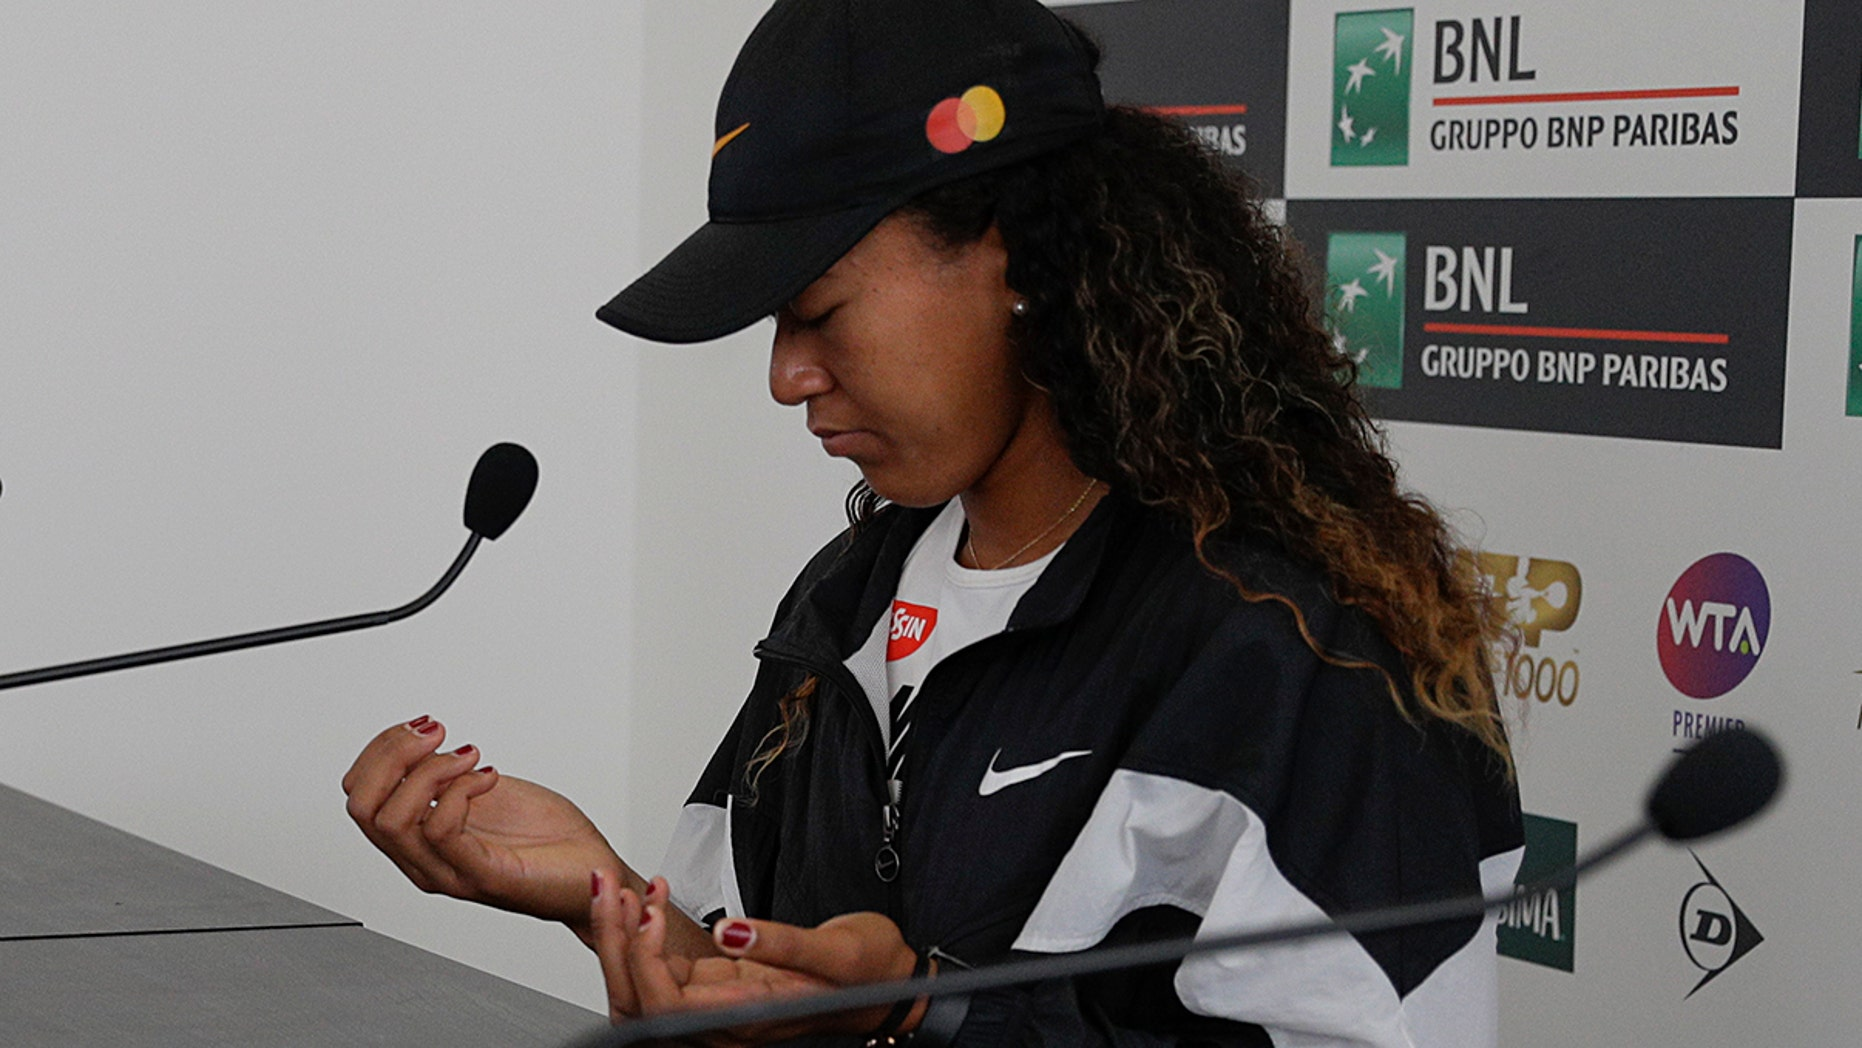 Japan's Naomi Osaka shows her hands as she meets the journalists at the Italian Open tennis tournament, in Rome, Friday, May, 17, 2019. Top-ranked Naomi Osaka withdrew from her Italian Open quarterfinal due to a right hand injury on Friday. It wasn't immediately clear how serious the injury was, or if it will affect Osaka's status for the French Open, which starts in nine days. (AP Photo/Gregorio Borgia)